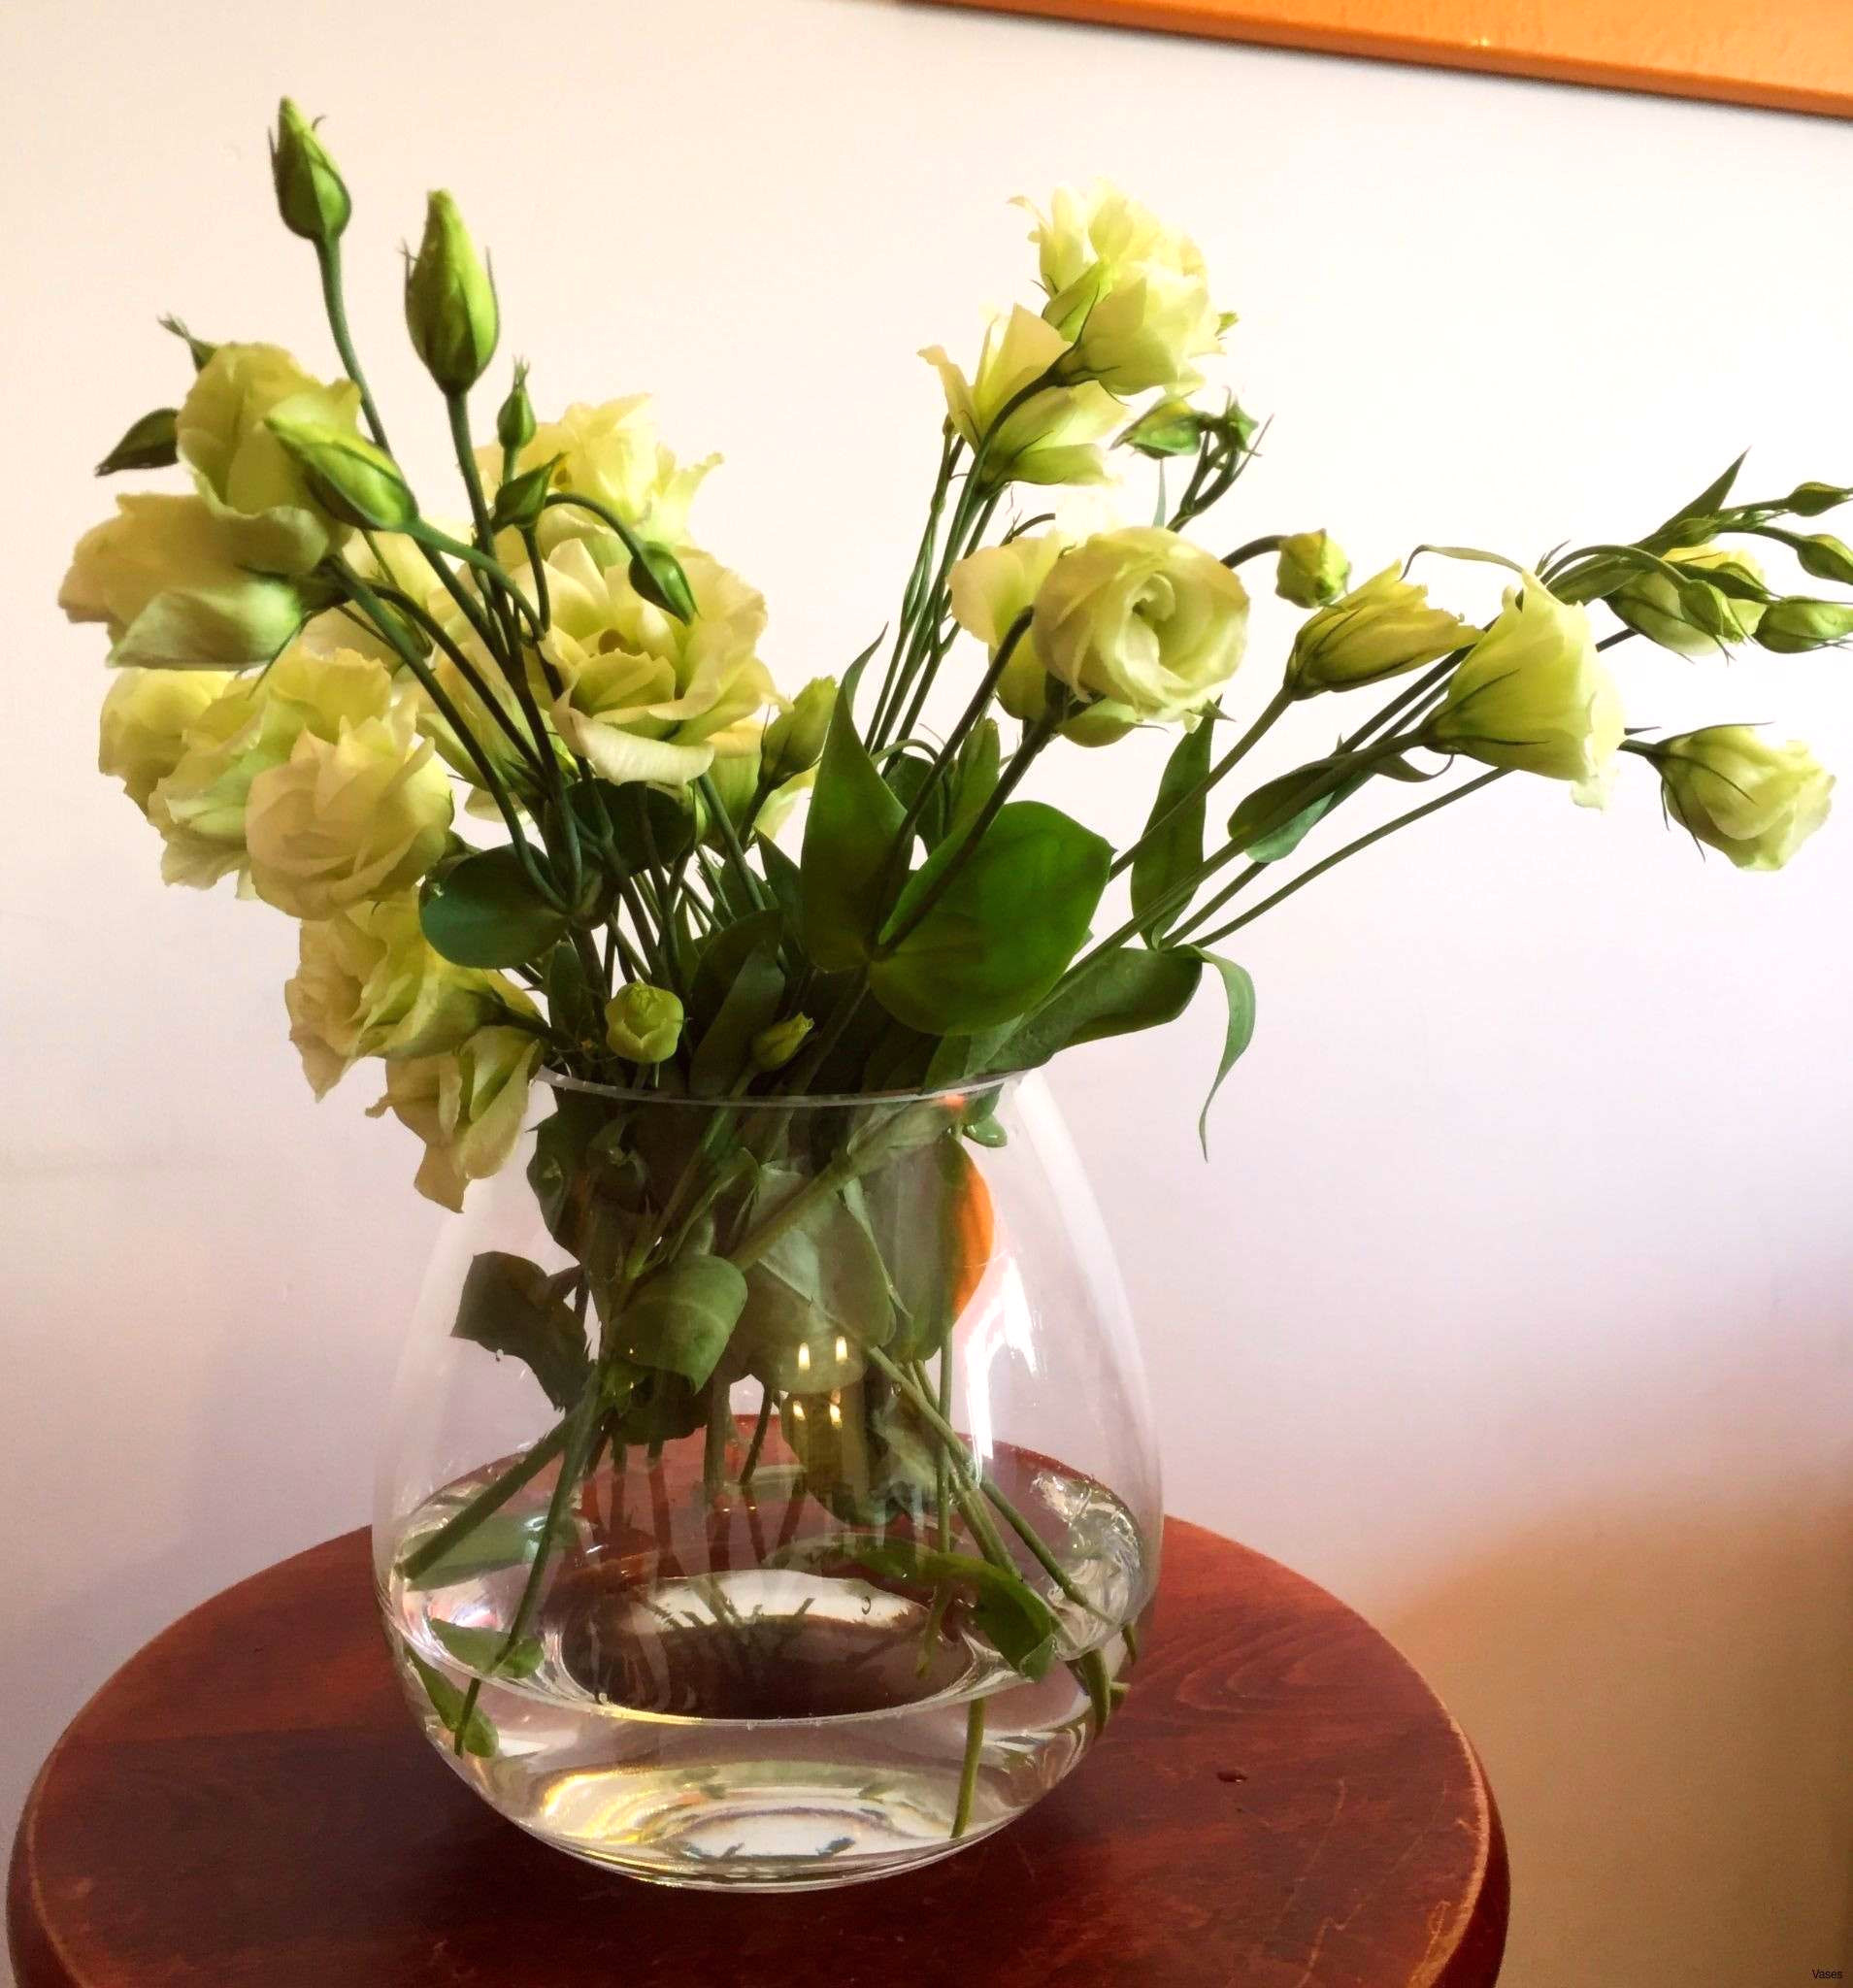 orange glass vase of photo bouquet coloring pages real roses new vases flowers in vase throughout photo bouquet coloring pages real roses new vases flowers in vase coloring siemenssanat com